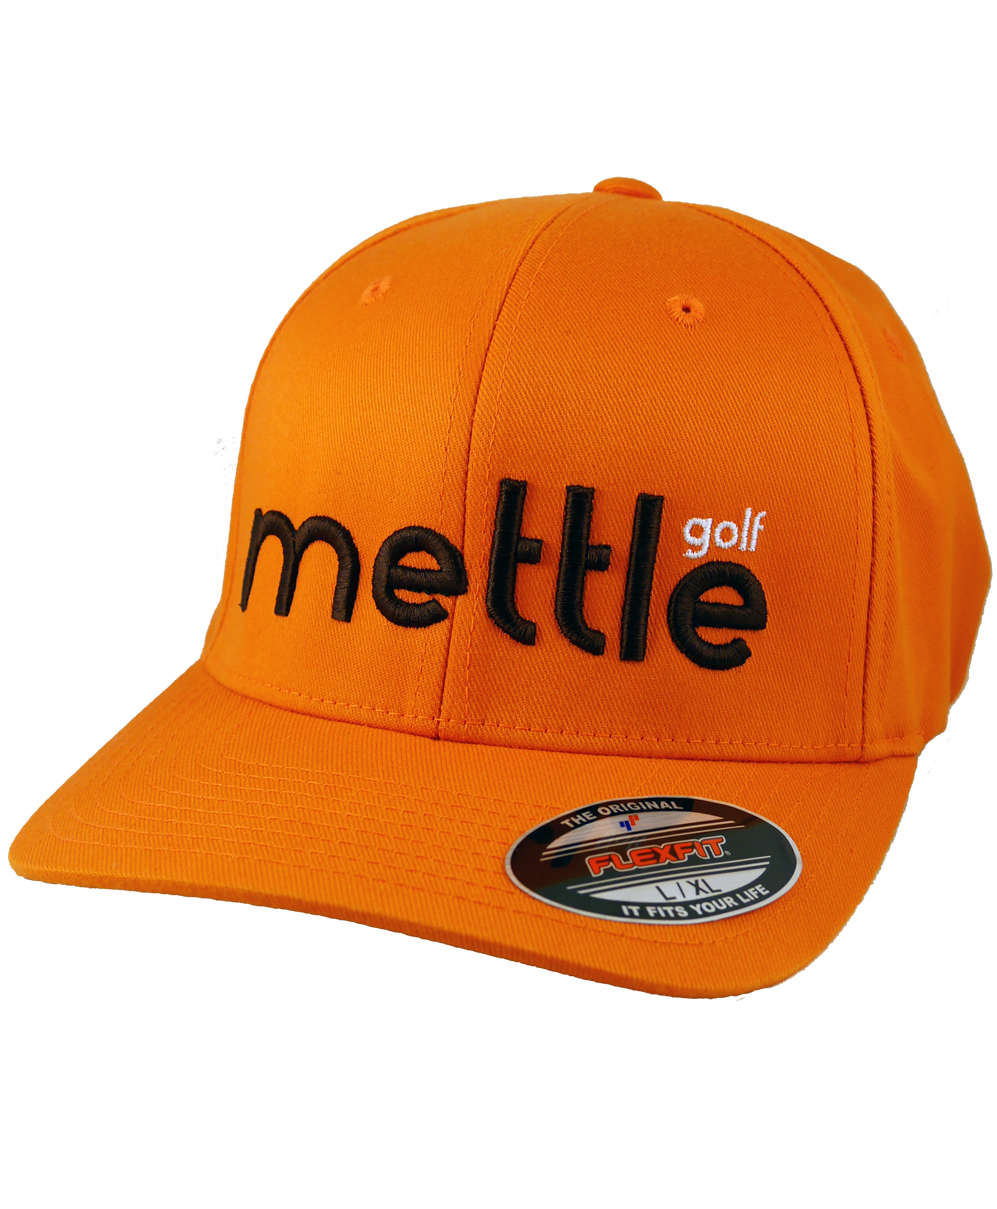 5a246c91f7b Mettle Hat - Orange - Mettle Golf